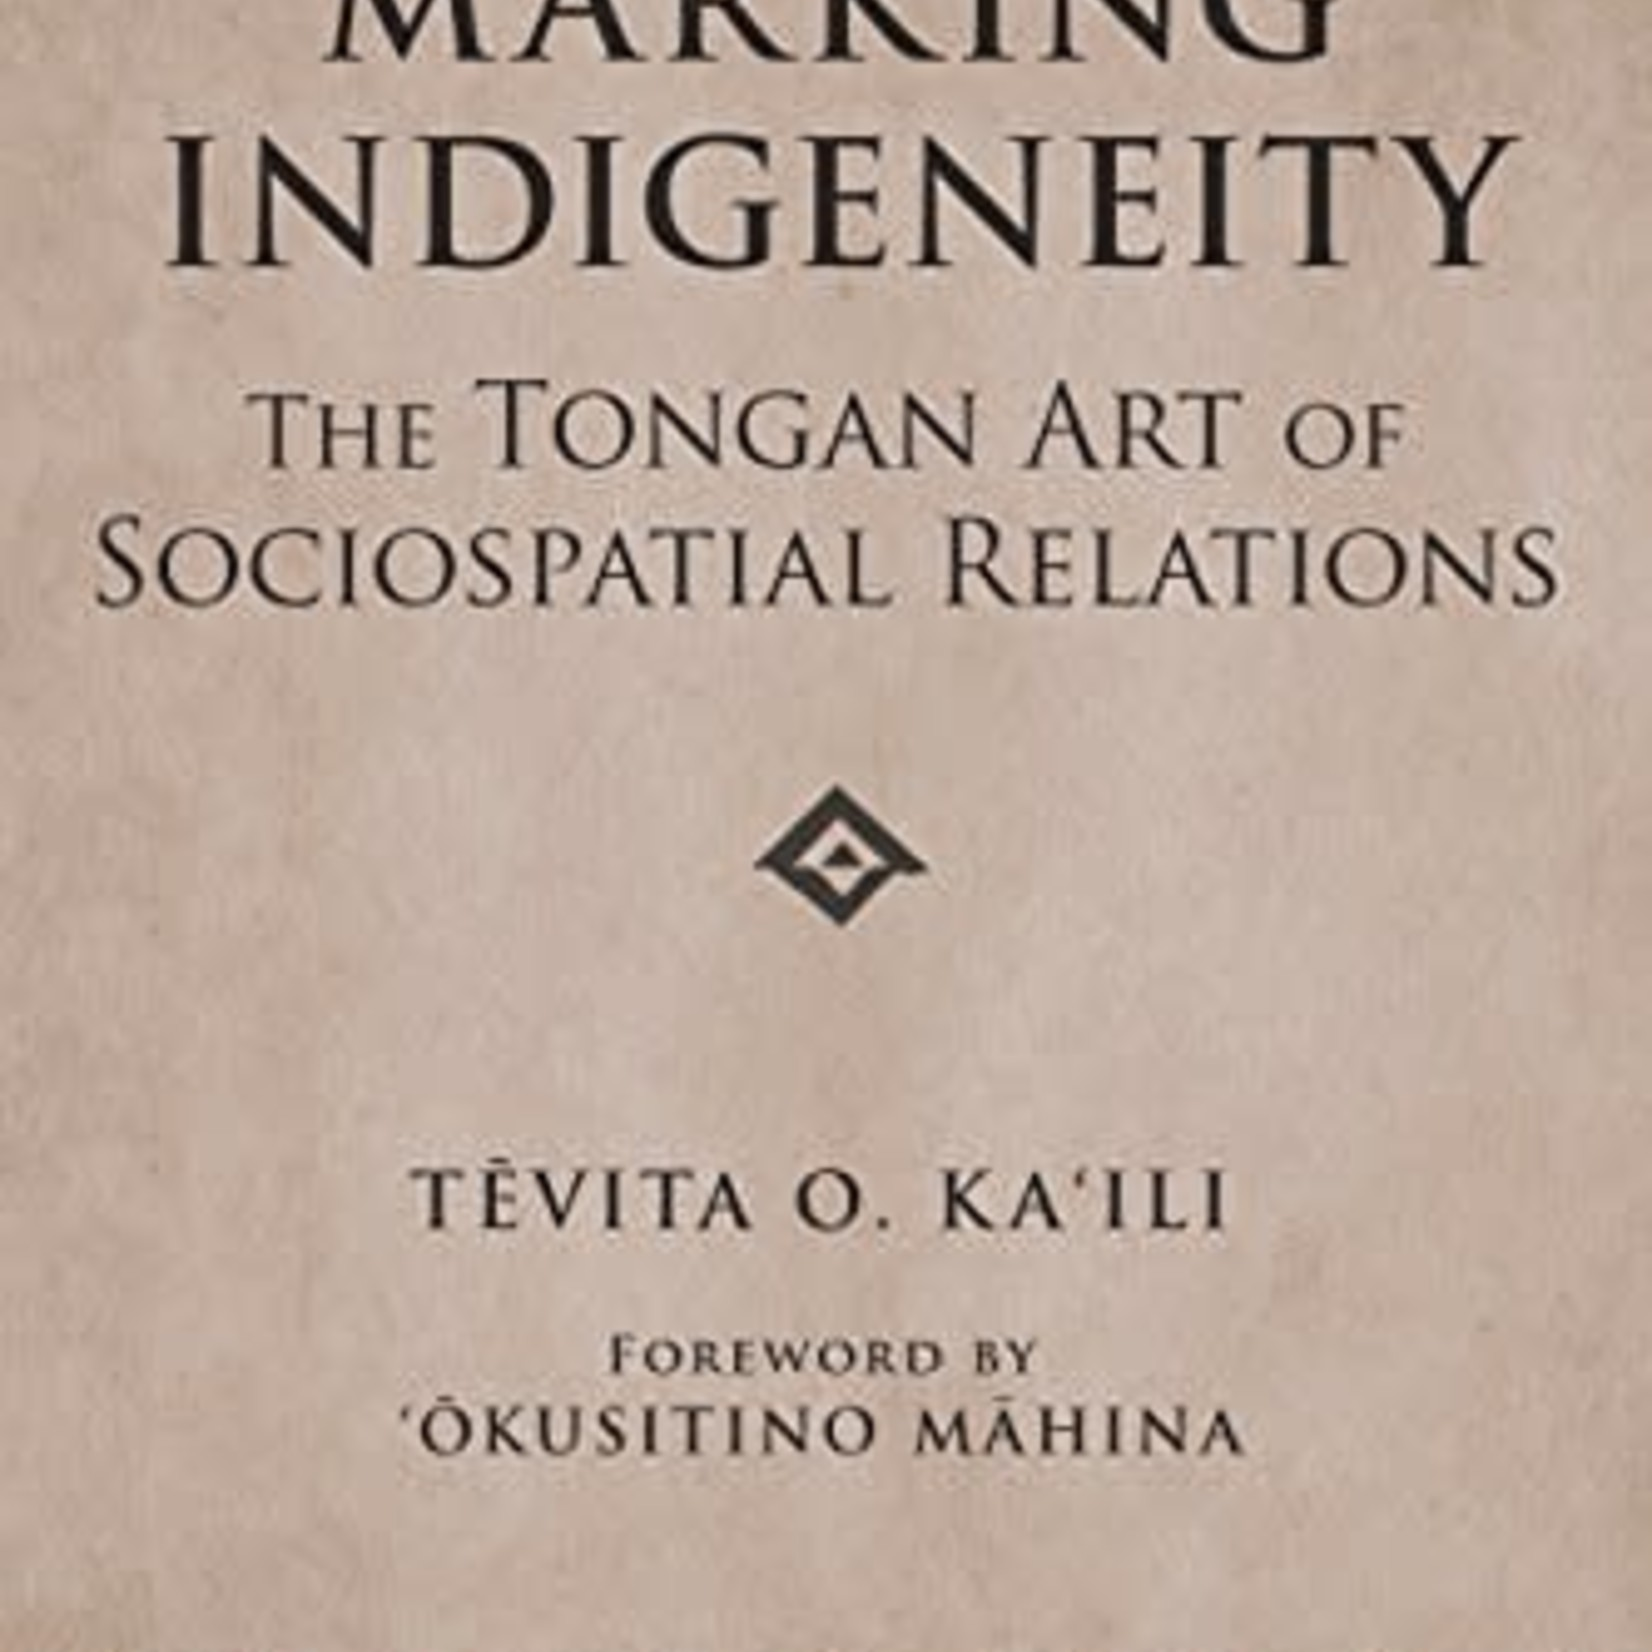 Marking Indigeneity: The Tongan Art of Sociospatial Relations (First Peoples: New Directions in Indigenous Studies)